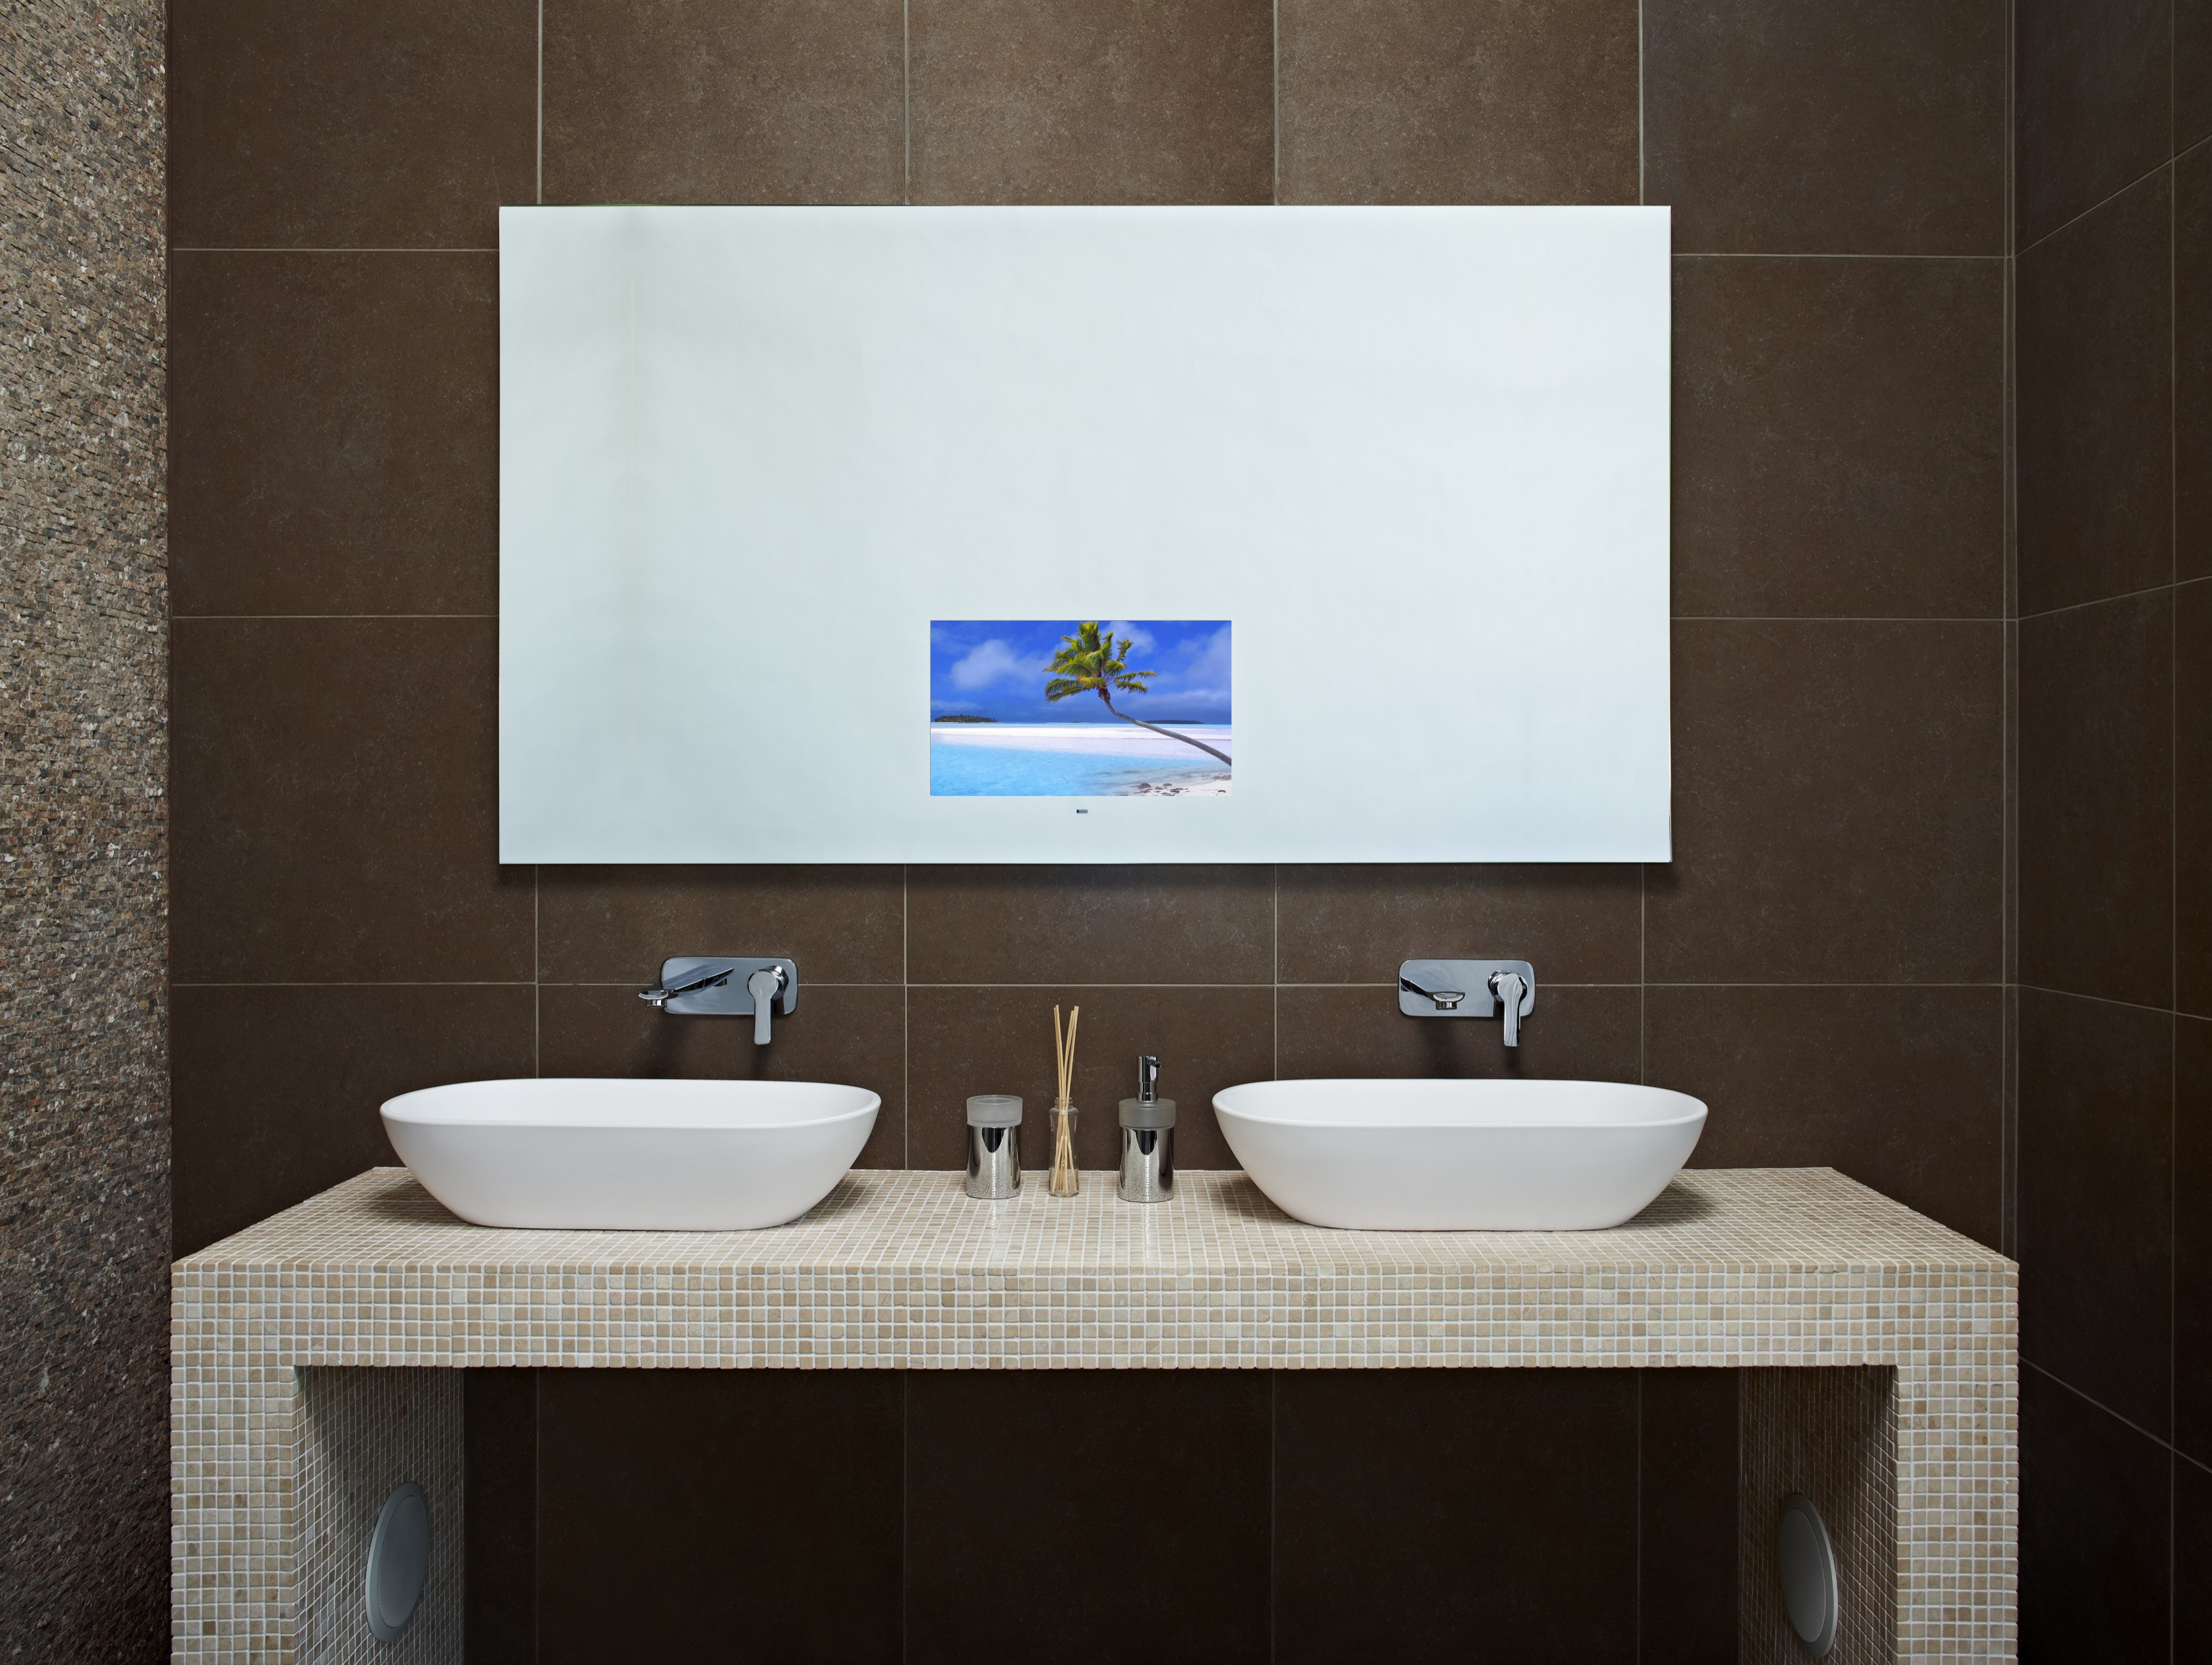 TechVision Waterproof Televisions for Kitchens Bathrooms